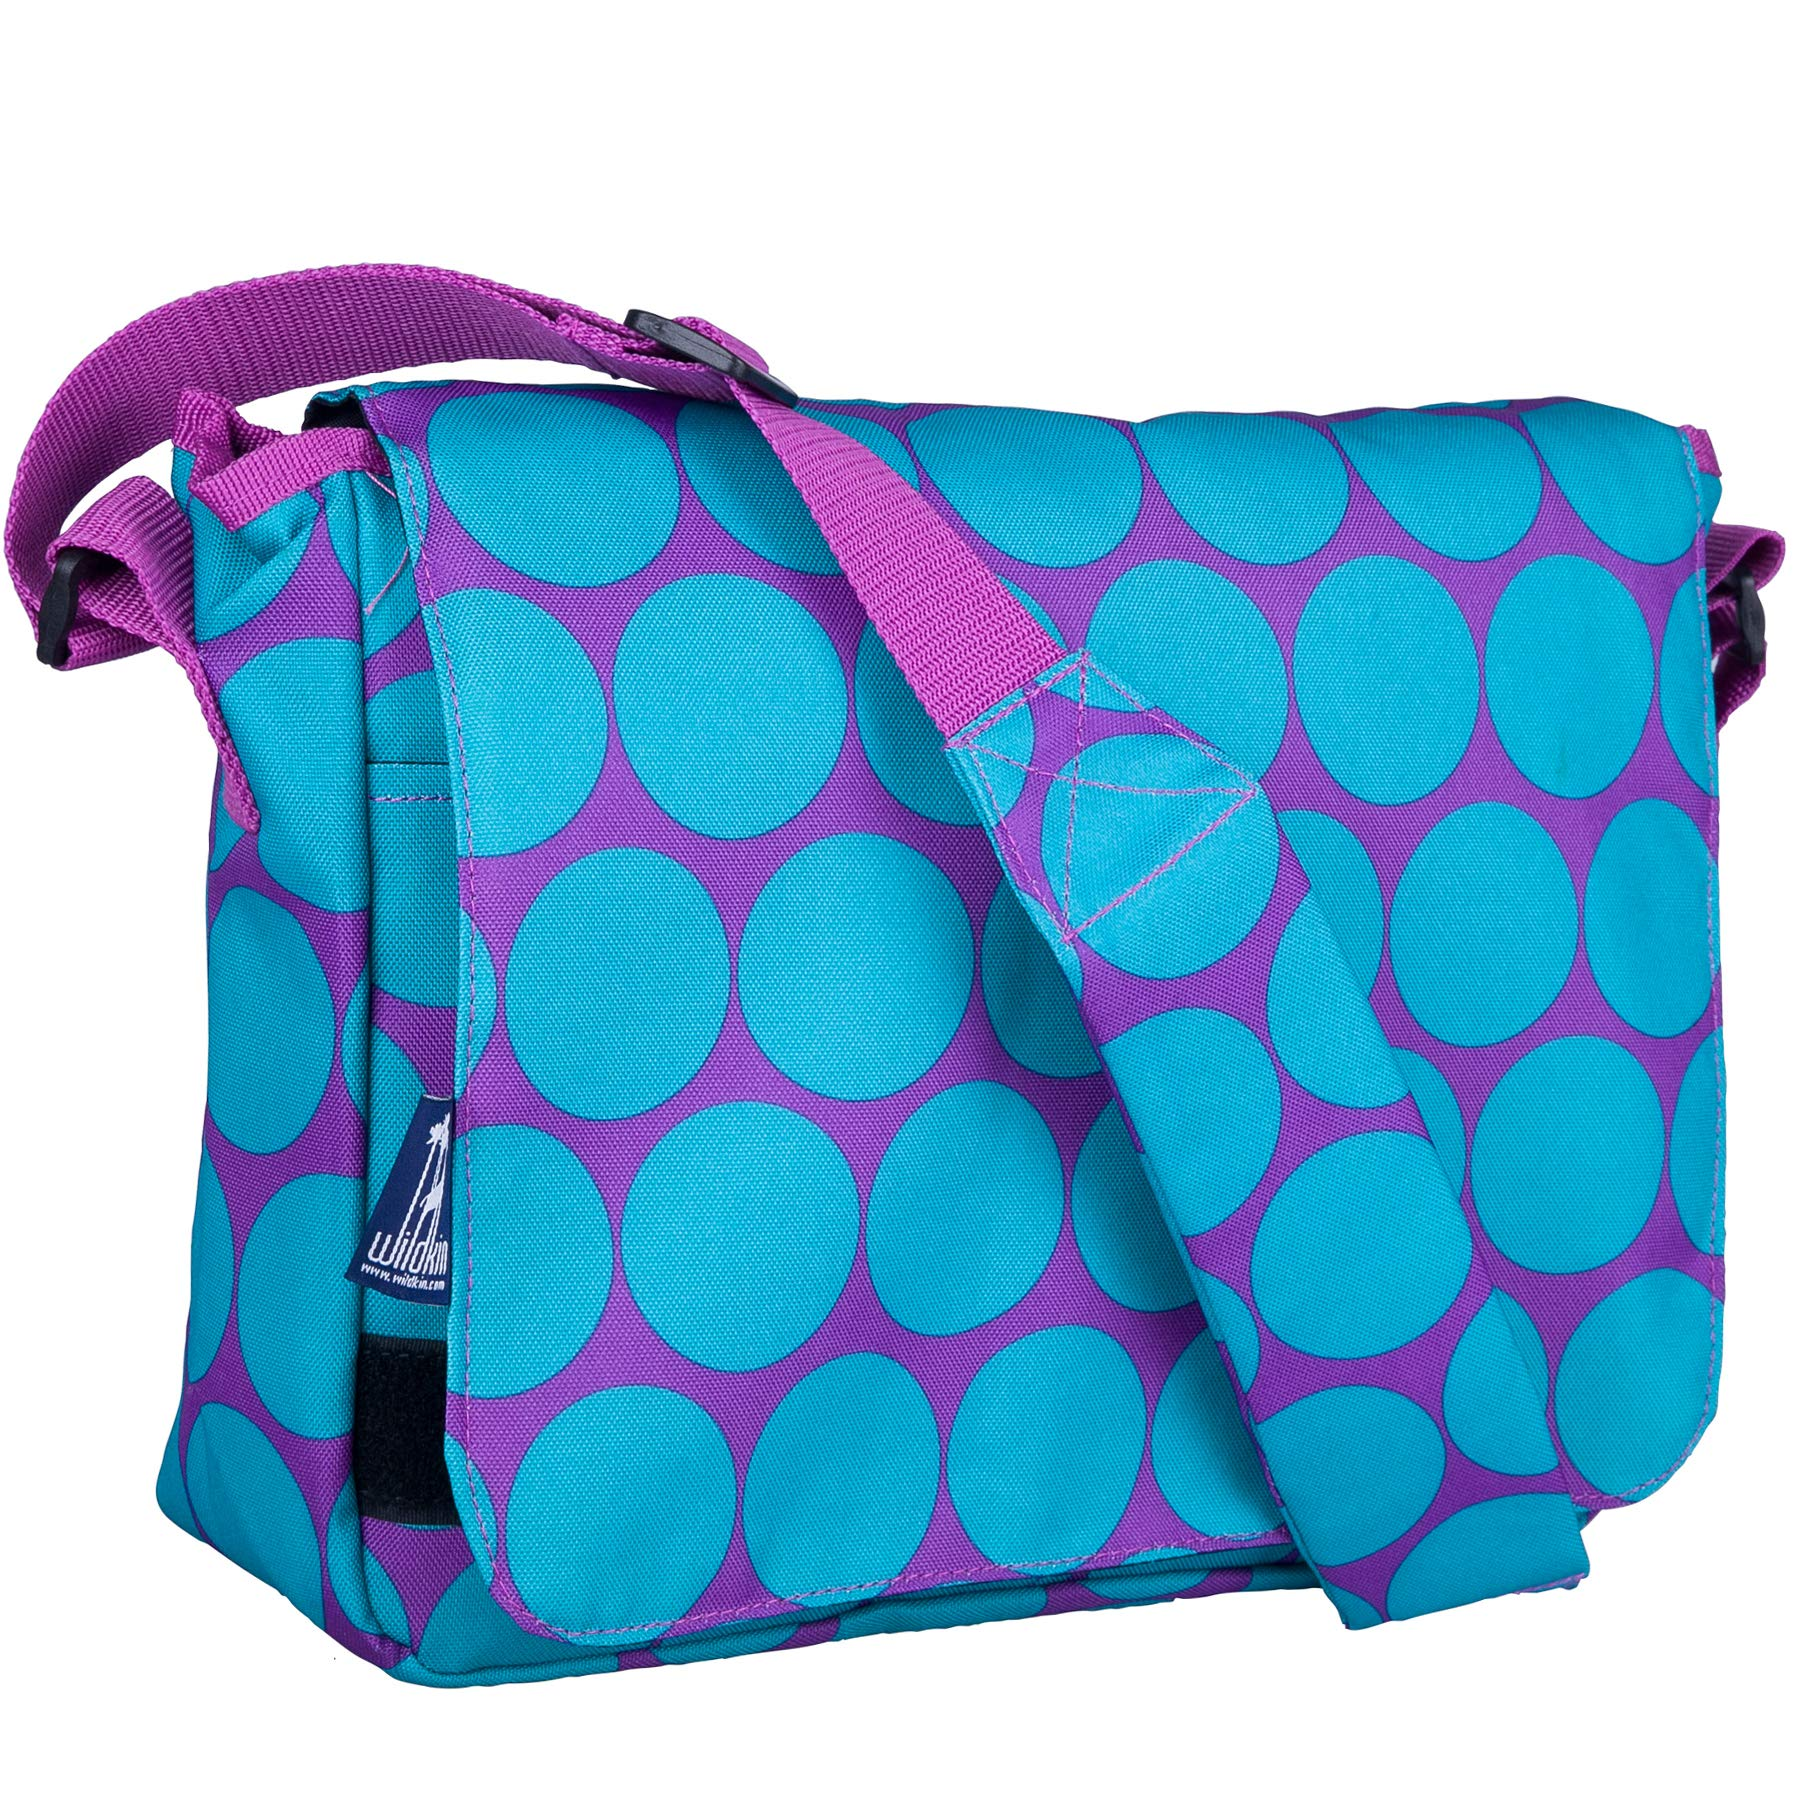 Wildkin Messenger Bag, 13 x 10 Inch Messenger Bag, Includes Interior and Exterior Pockets and Velcro Closure, Ages 8+, Perfect for School, Sports, and Day Trips – Big Dot Aqua